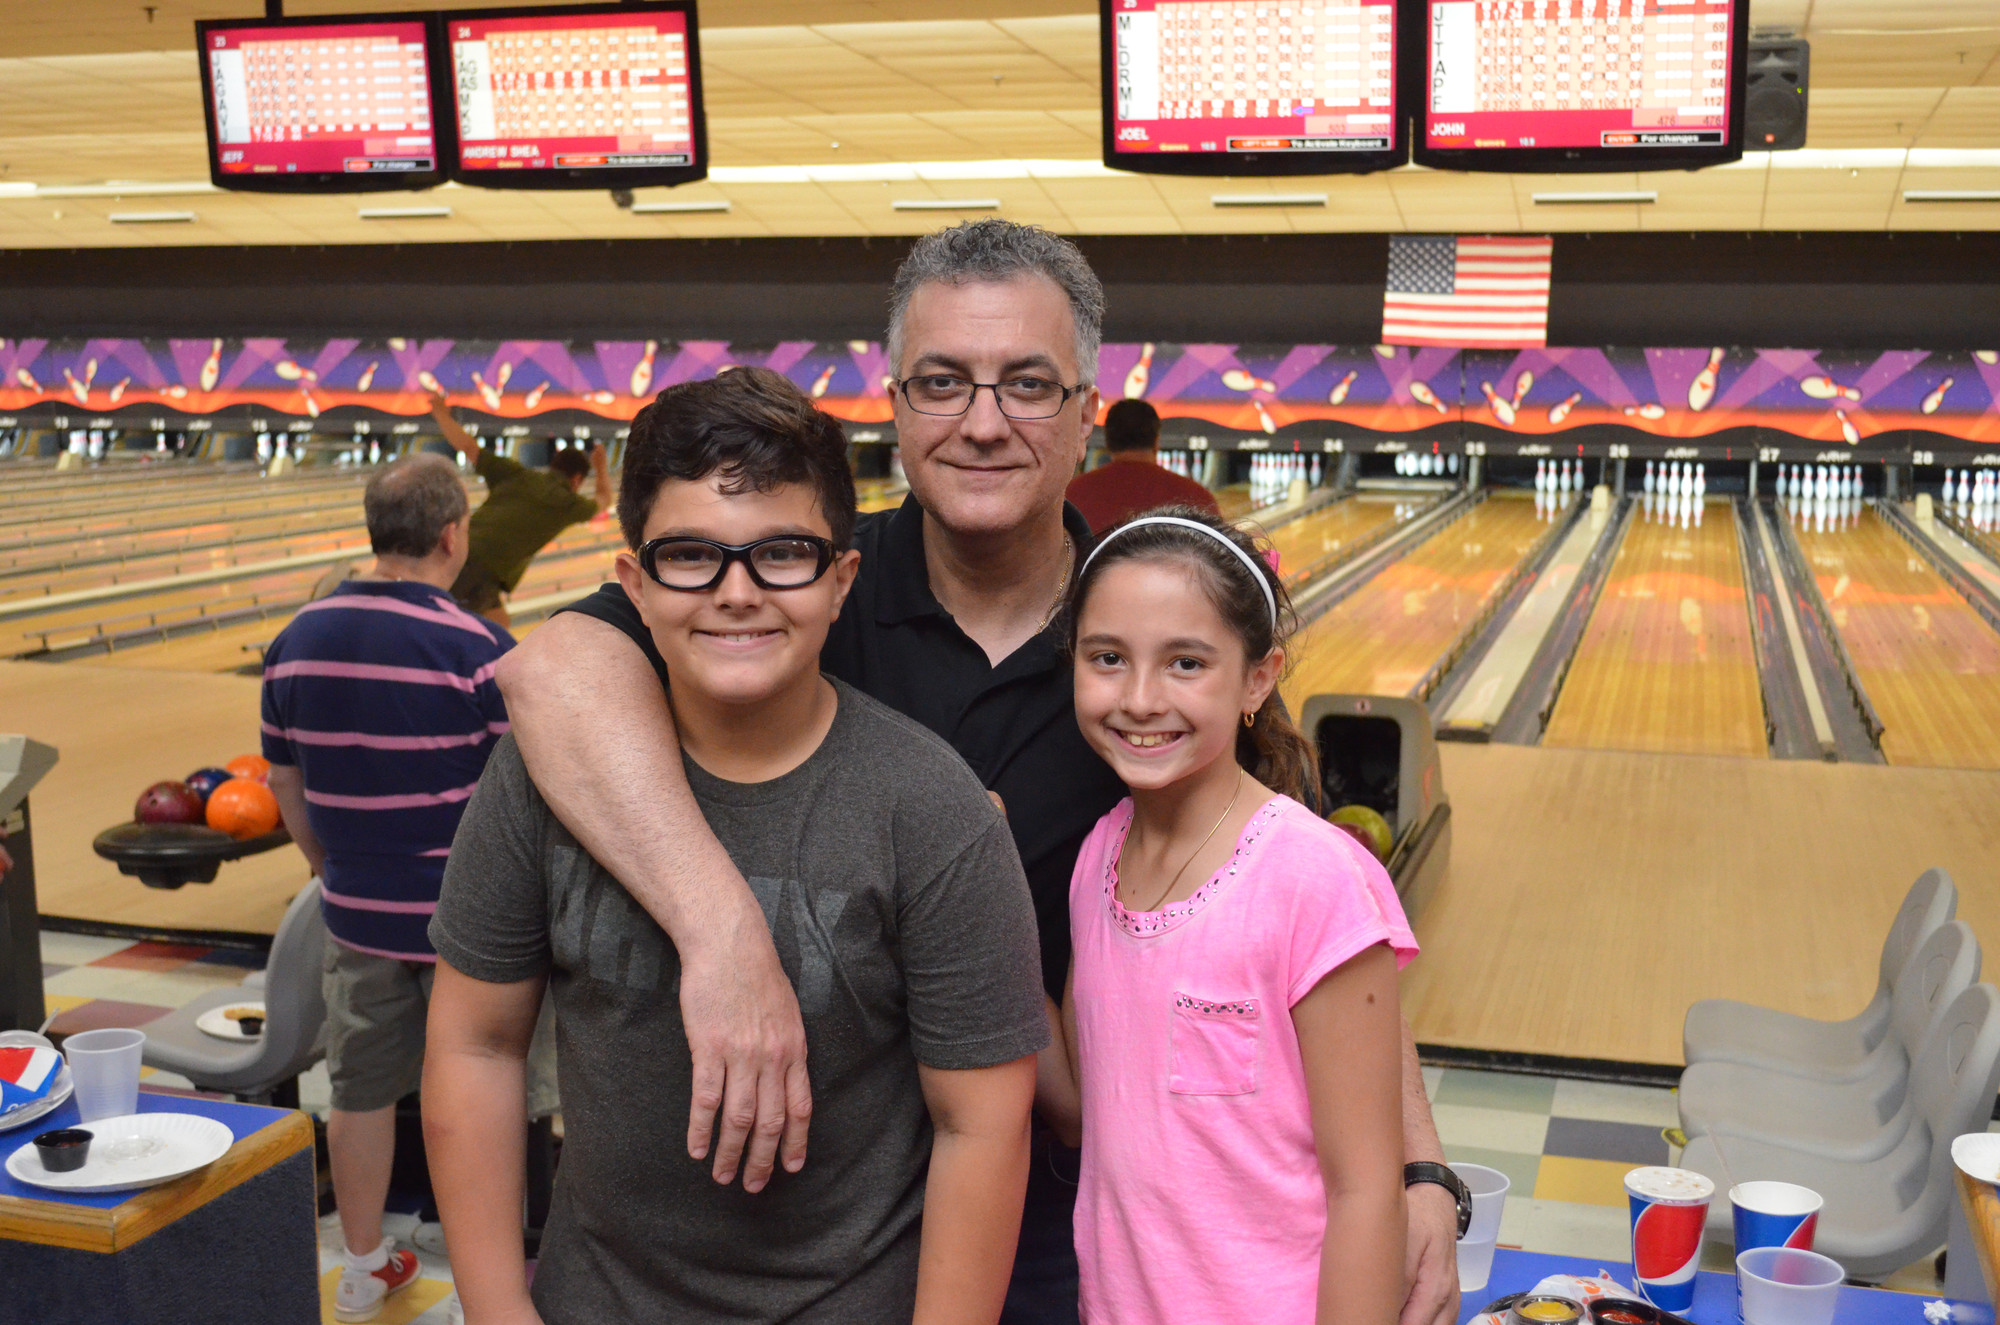 It was a happy father's day for Peter Strifas, who smiled with his daughter, Taylor, 9, and son, John, 10.